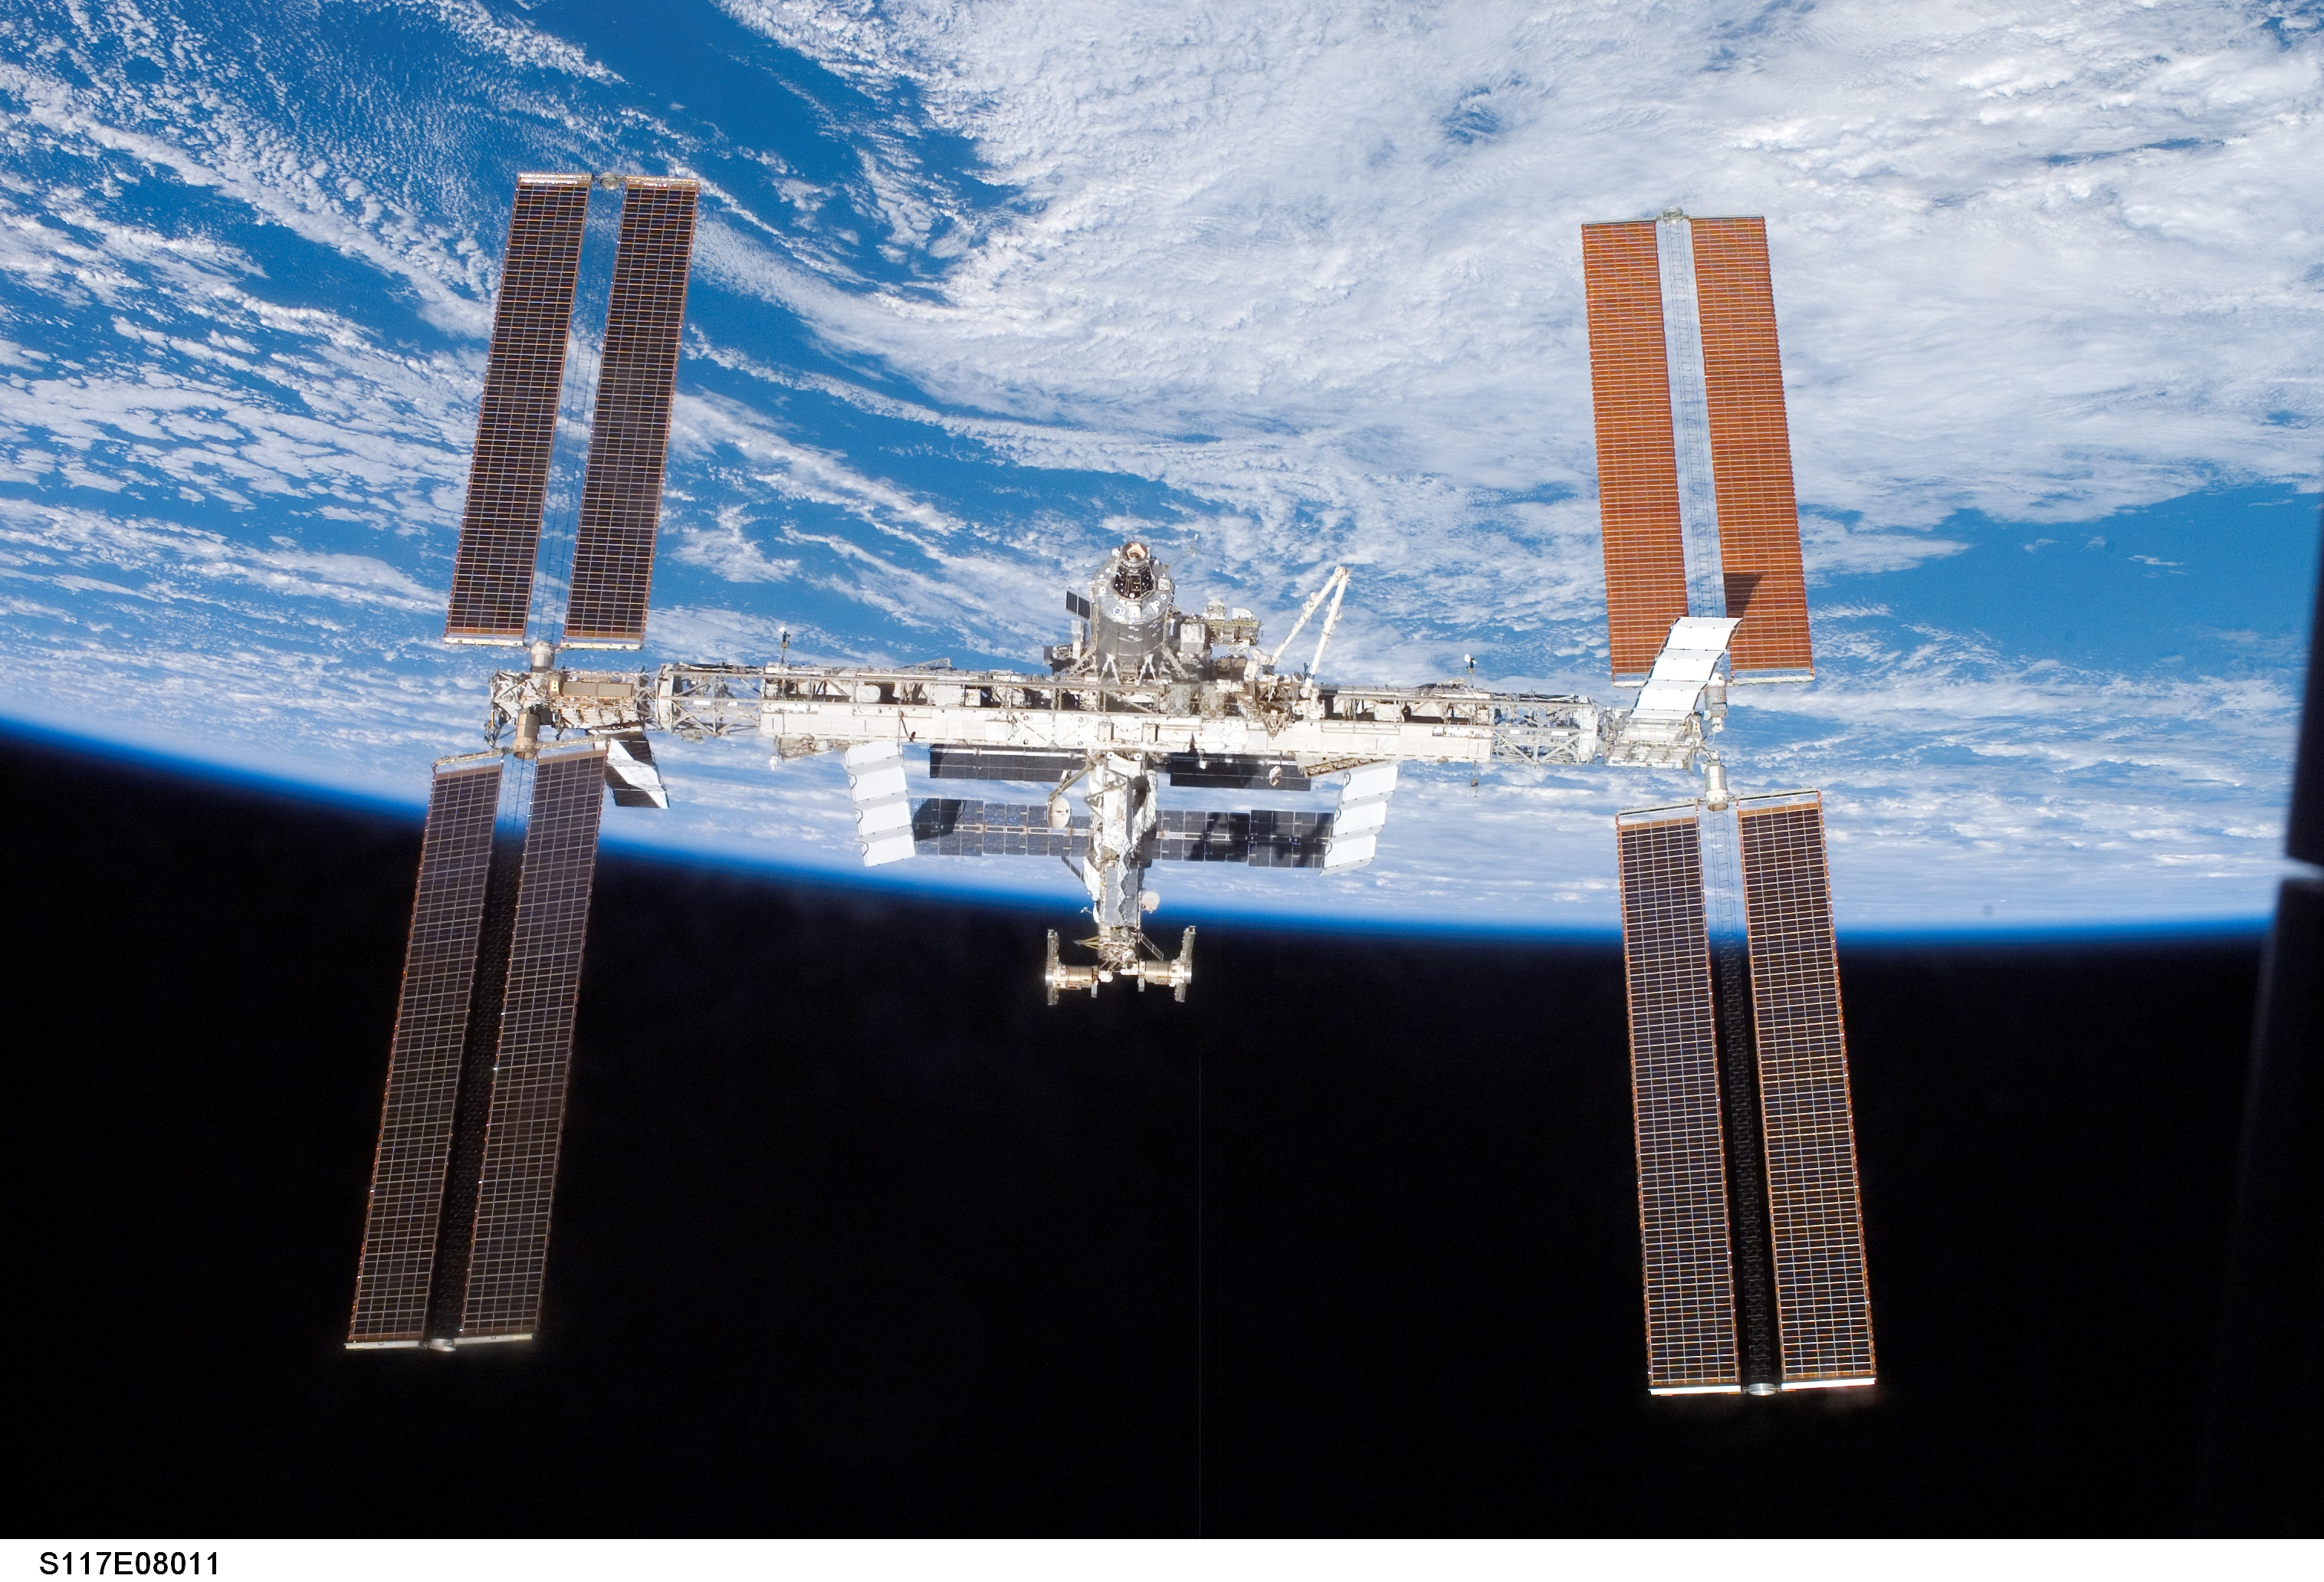 ISS-11